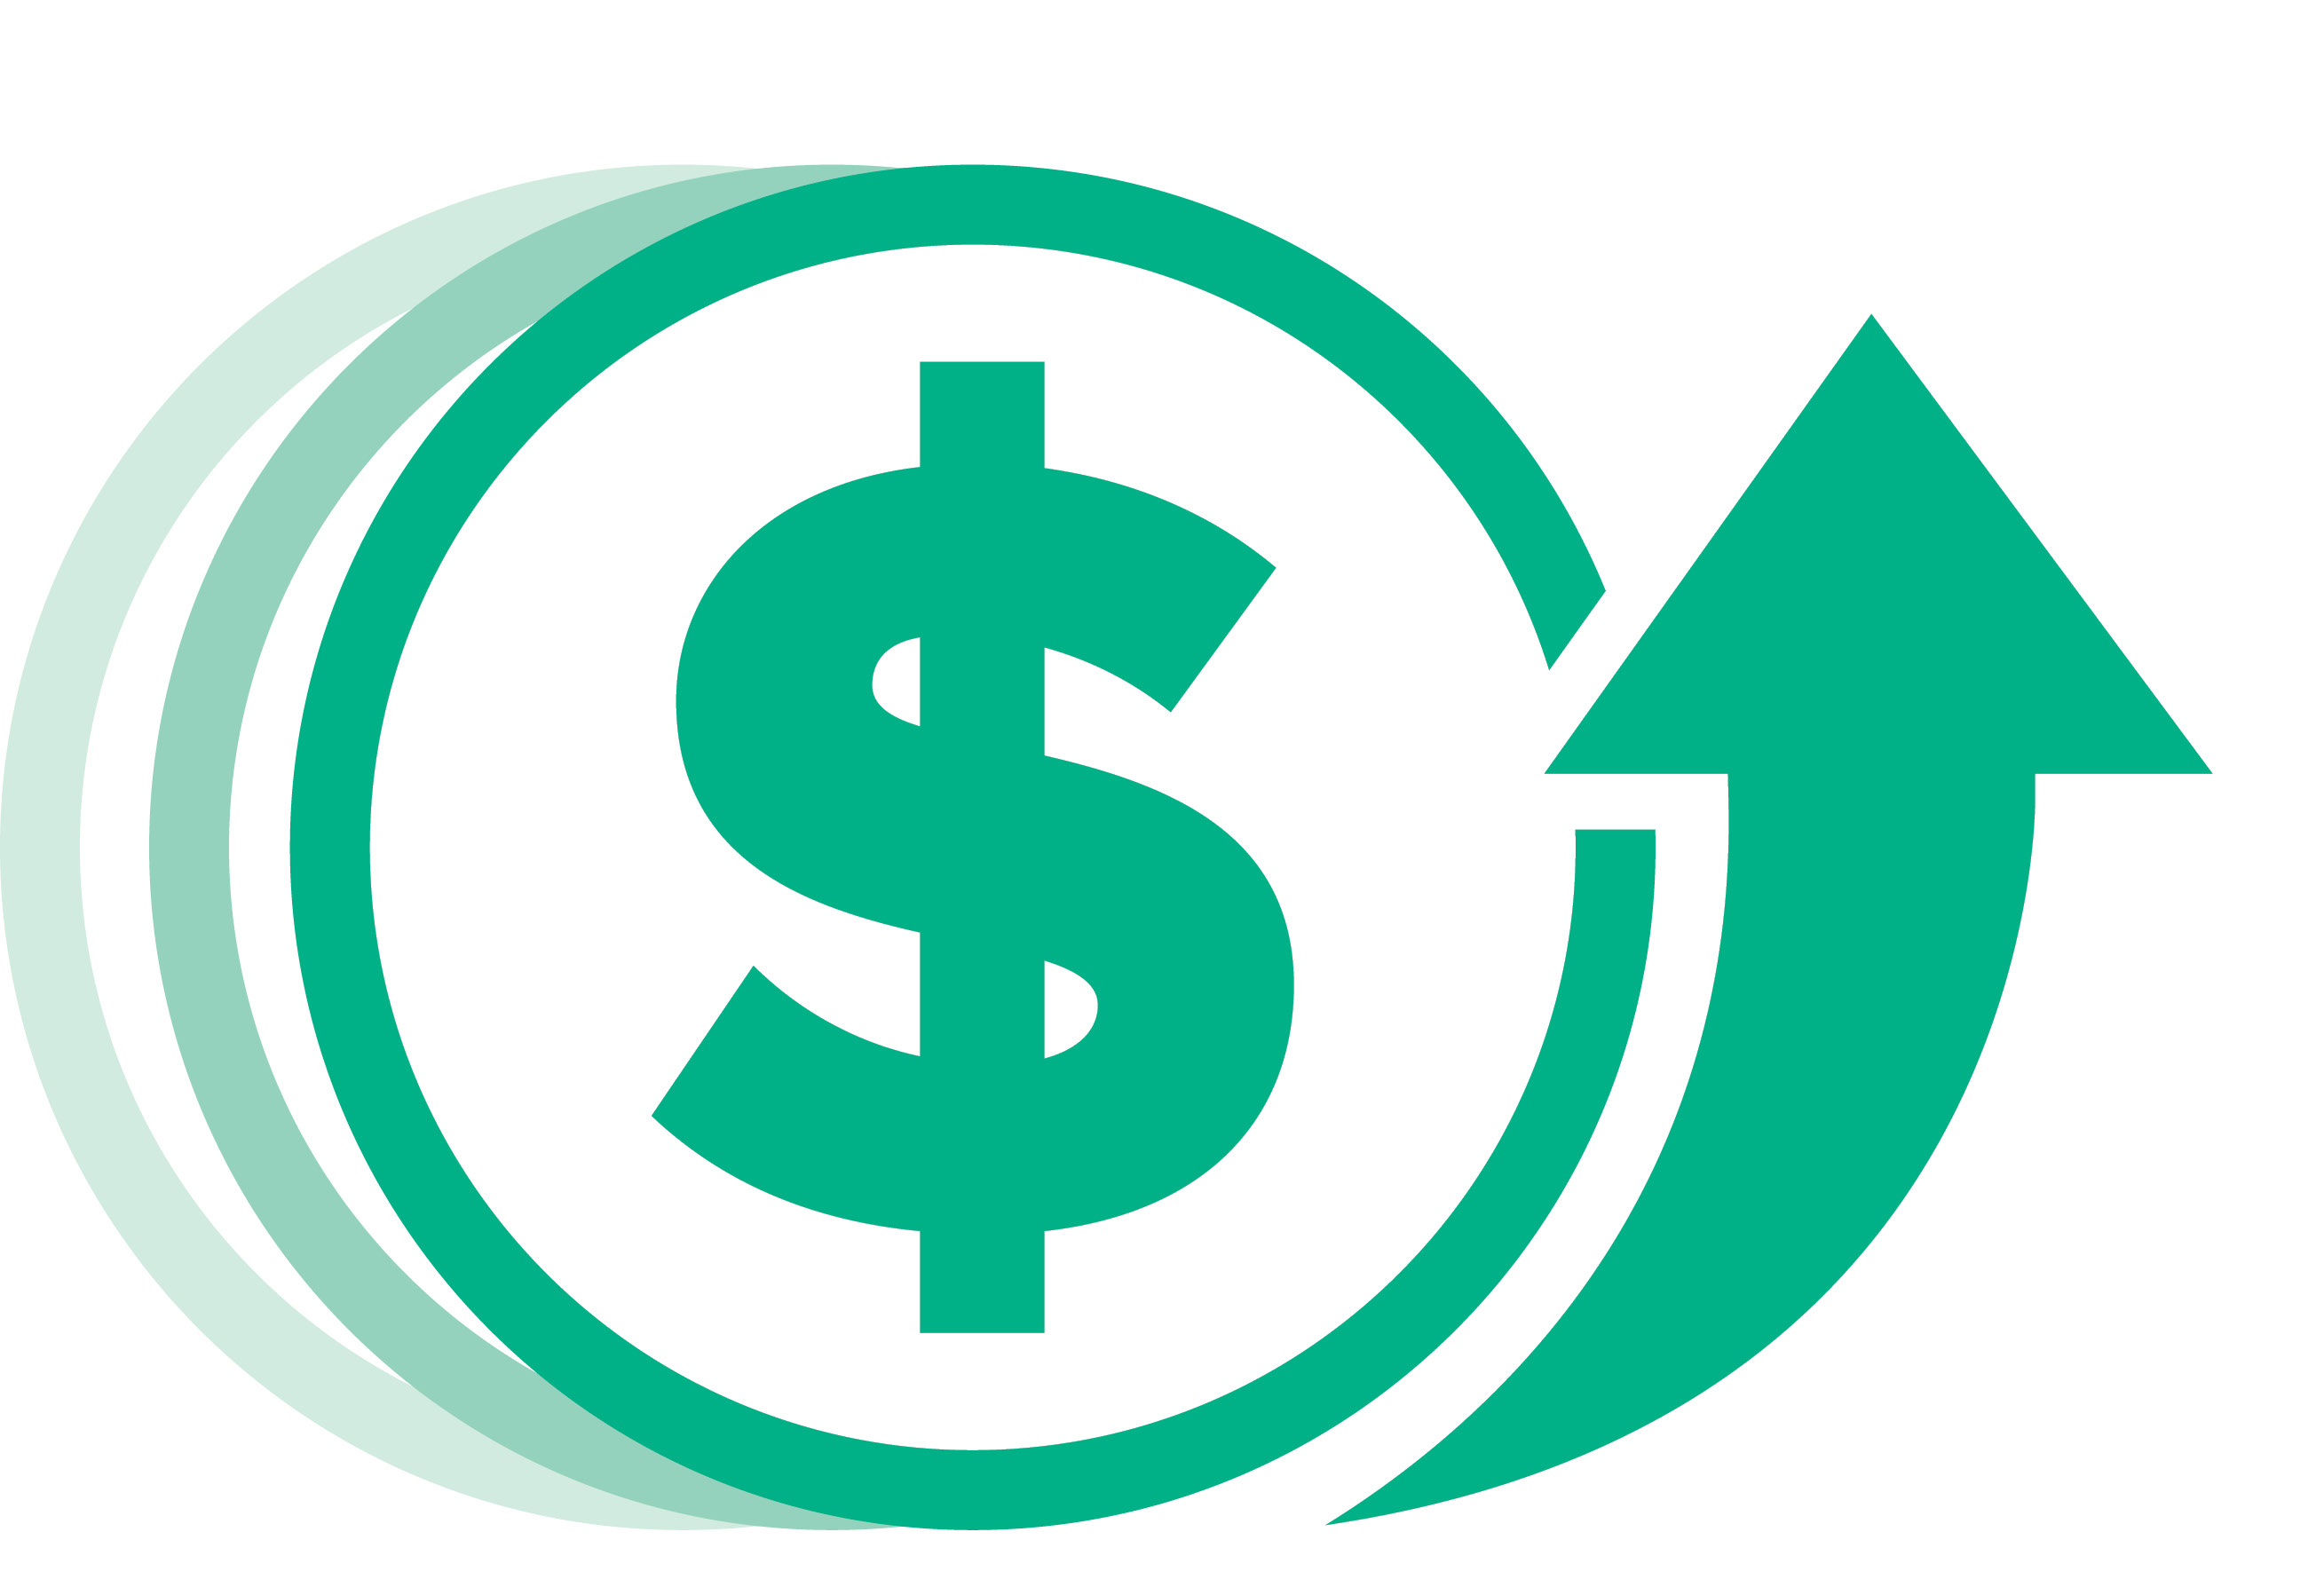 graphic of a dollar sign with green arrow to represent growing cash flow